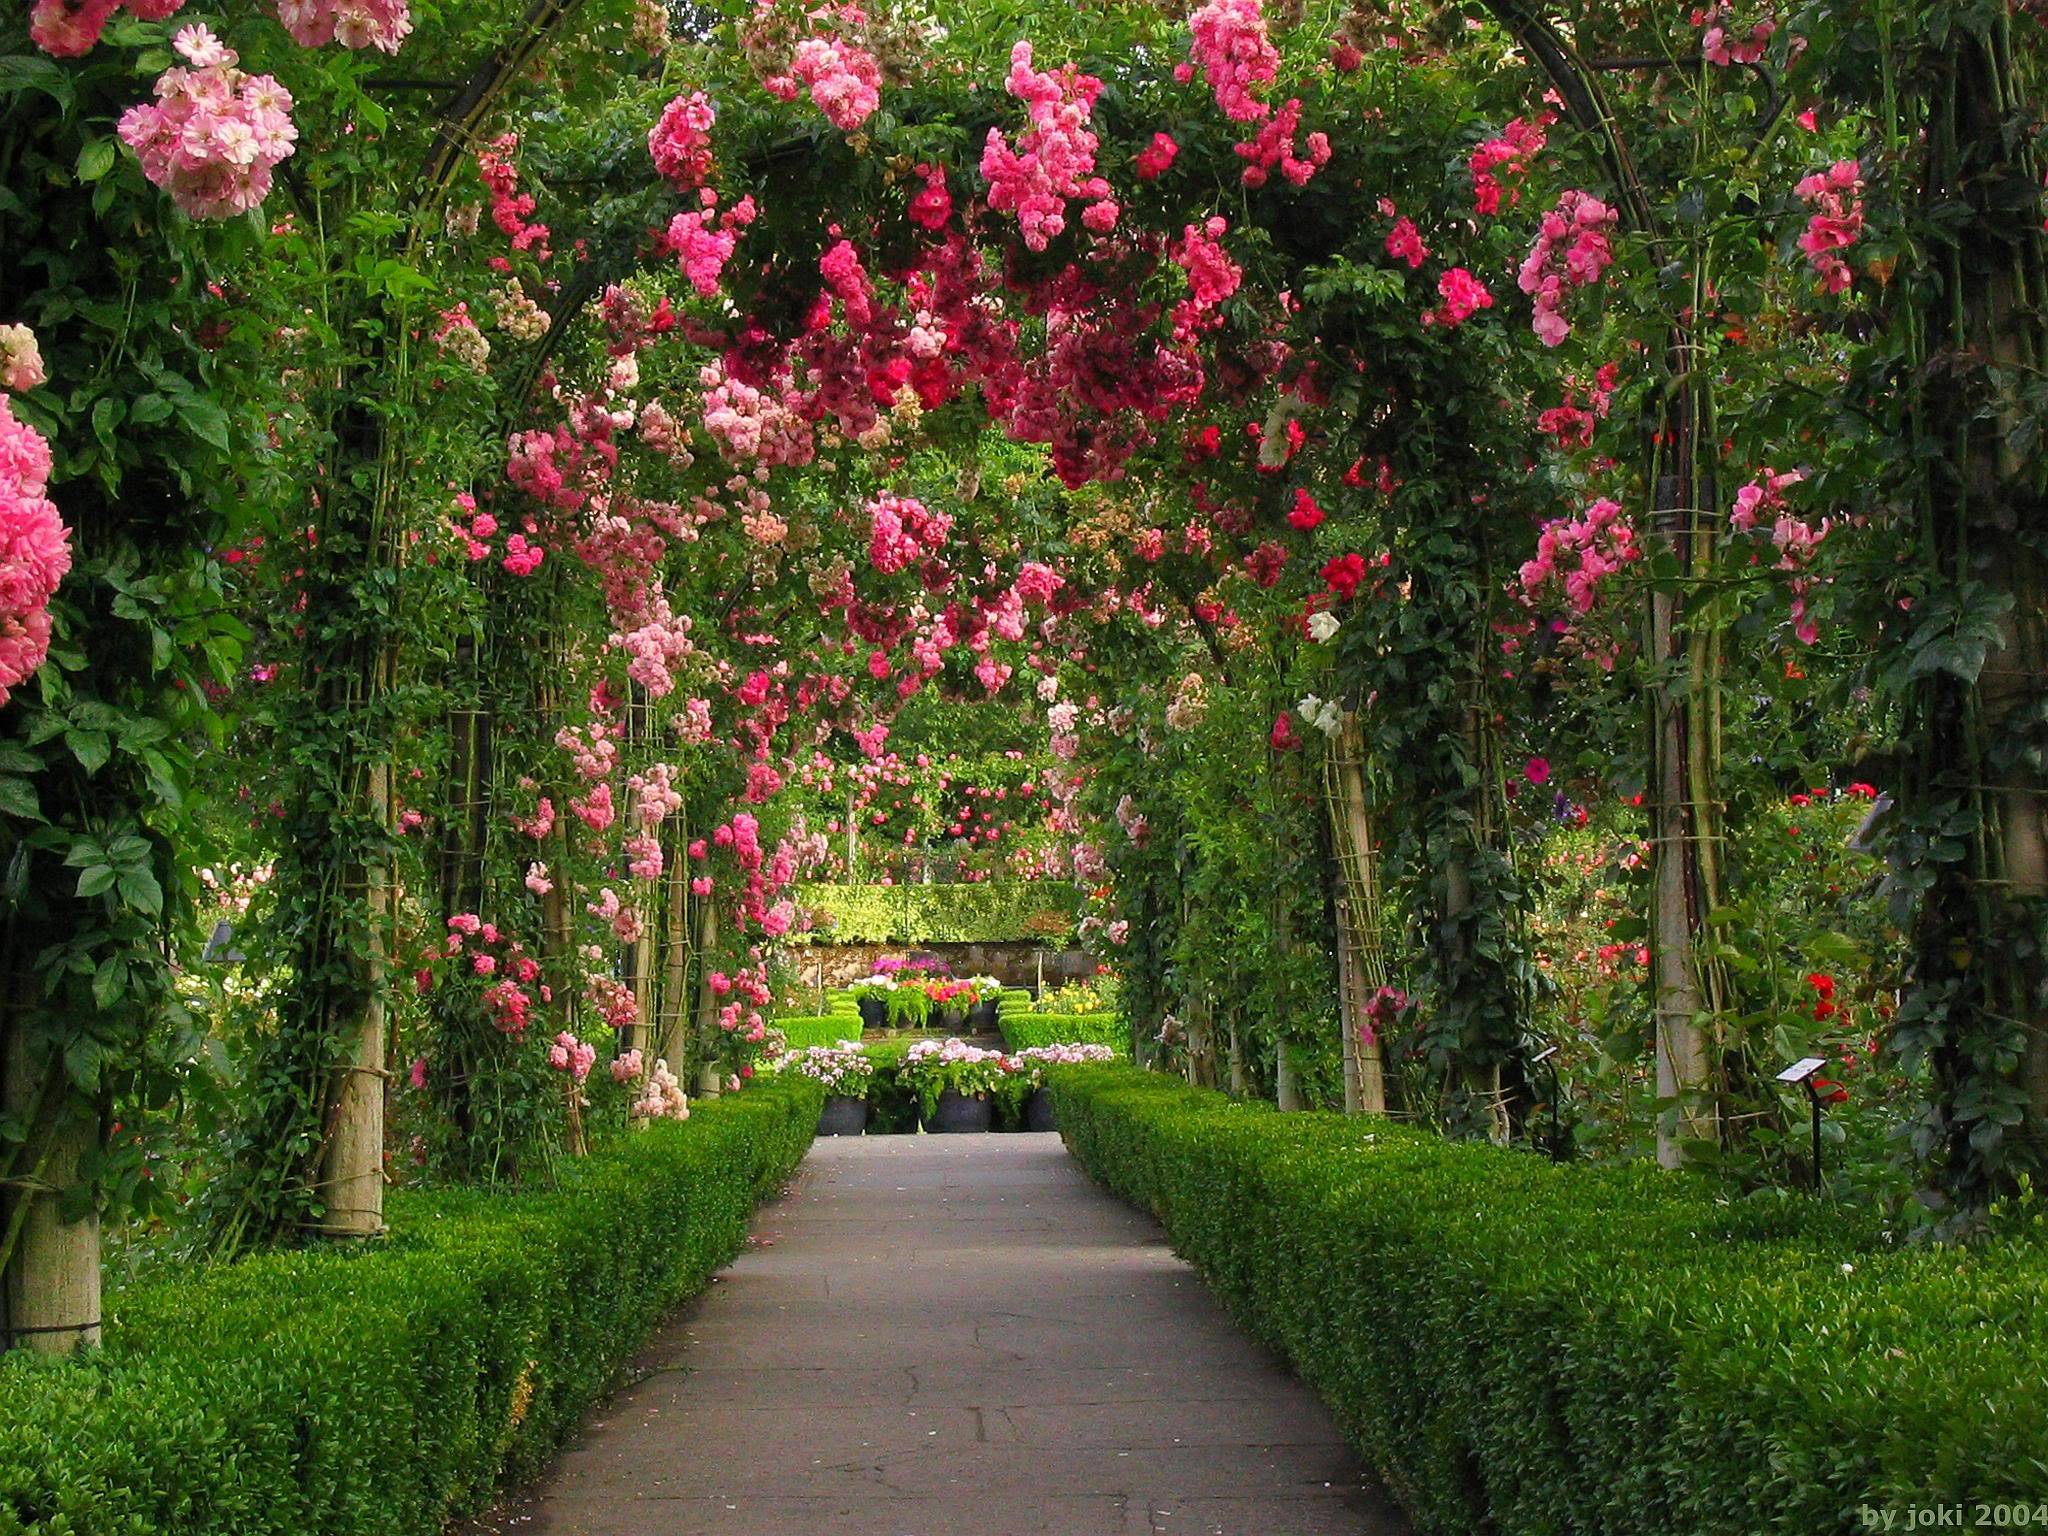 rose garden wallpapers - wallpaper cave